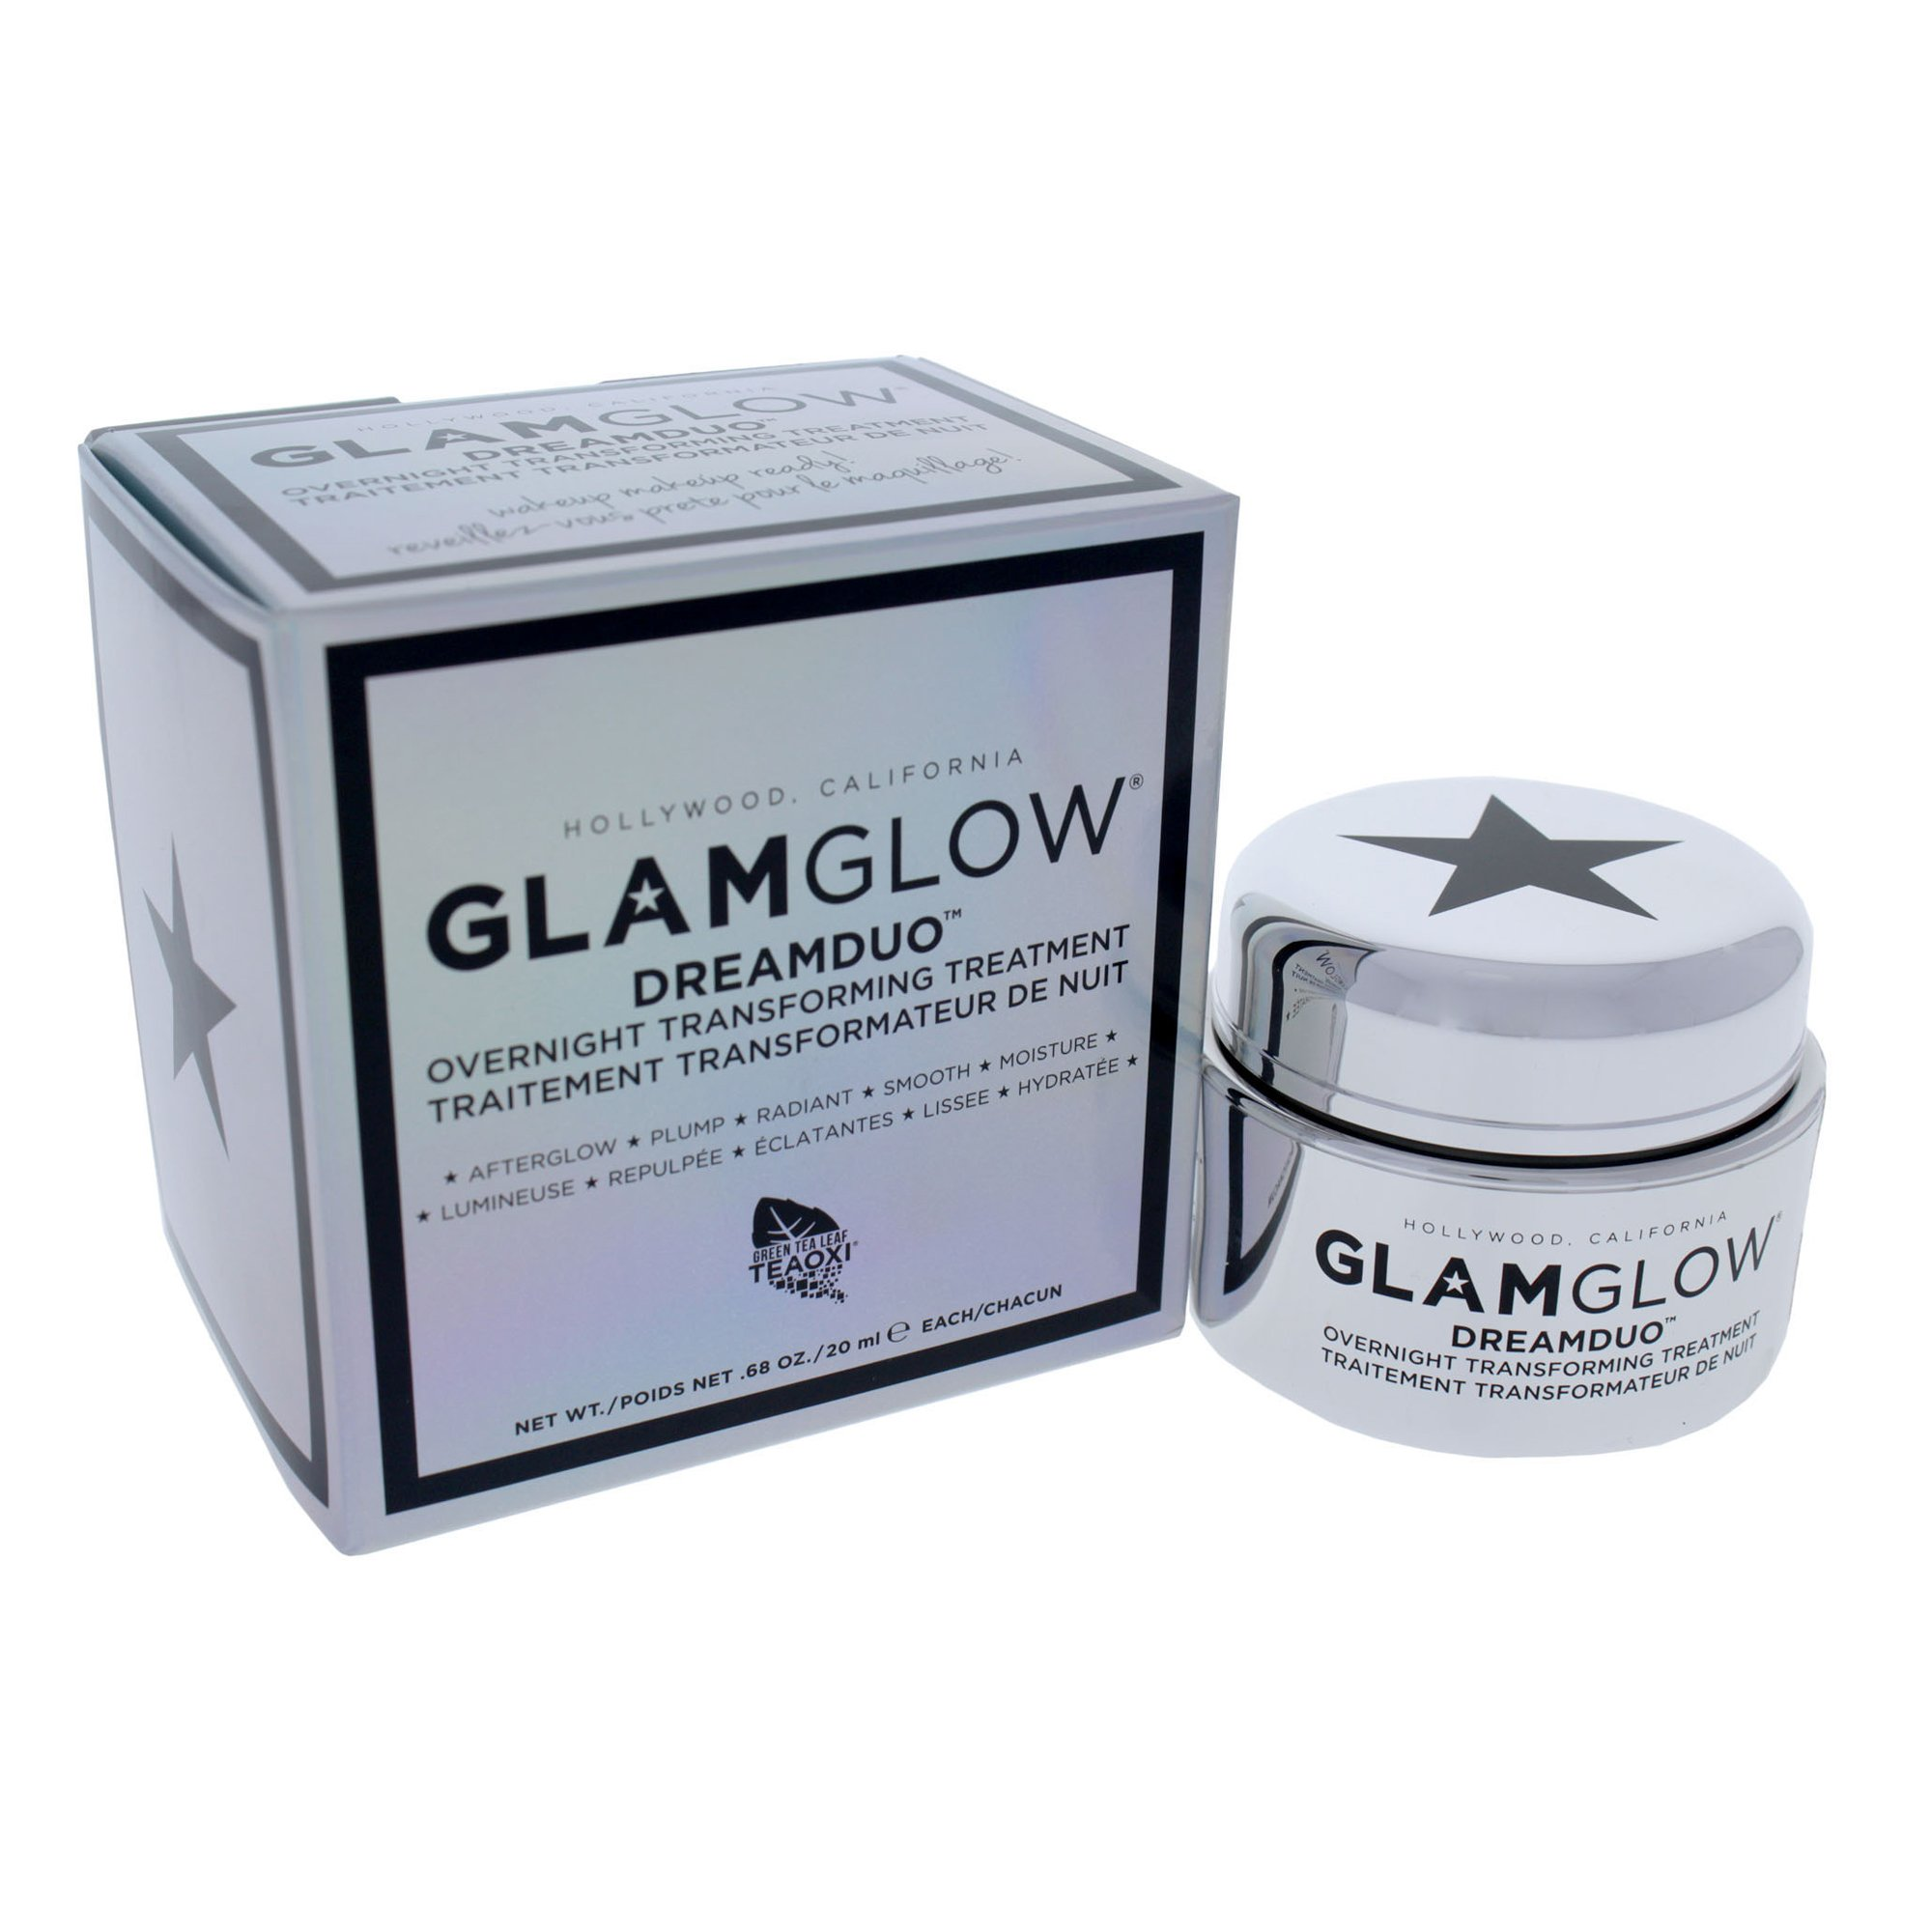 Glamglow Dreamduo Overnight Transforming Treatment, 0.68 Ounce